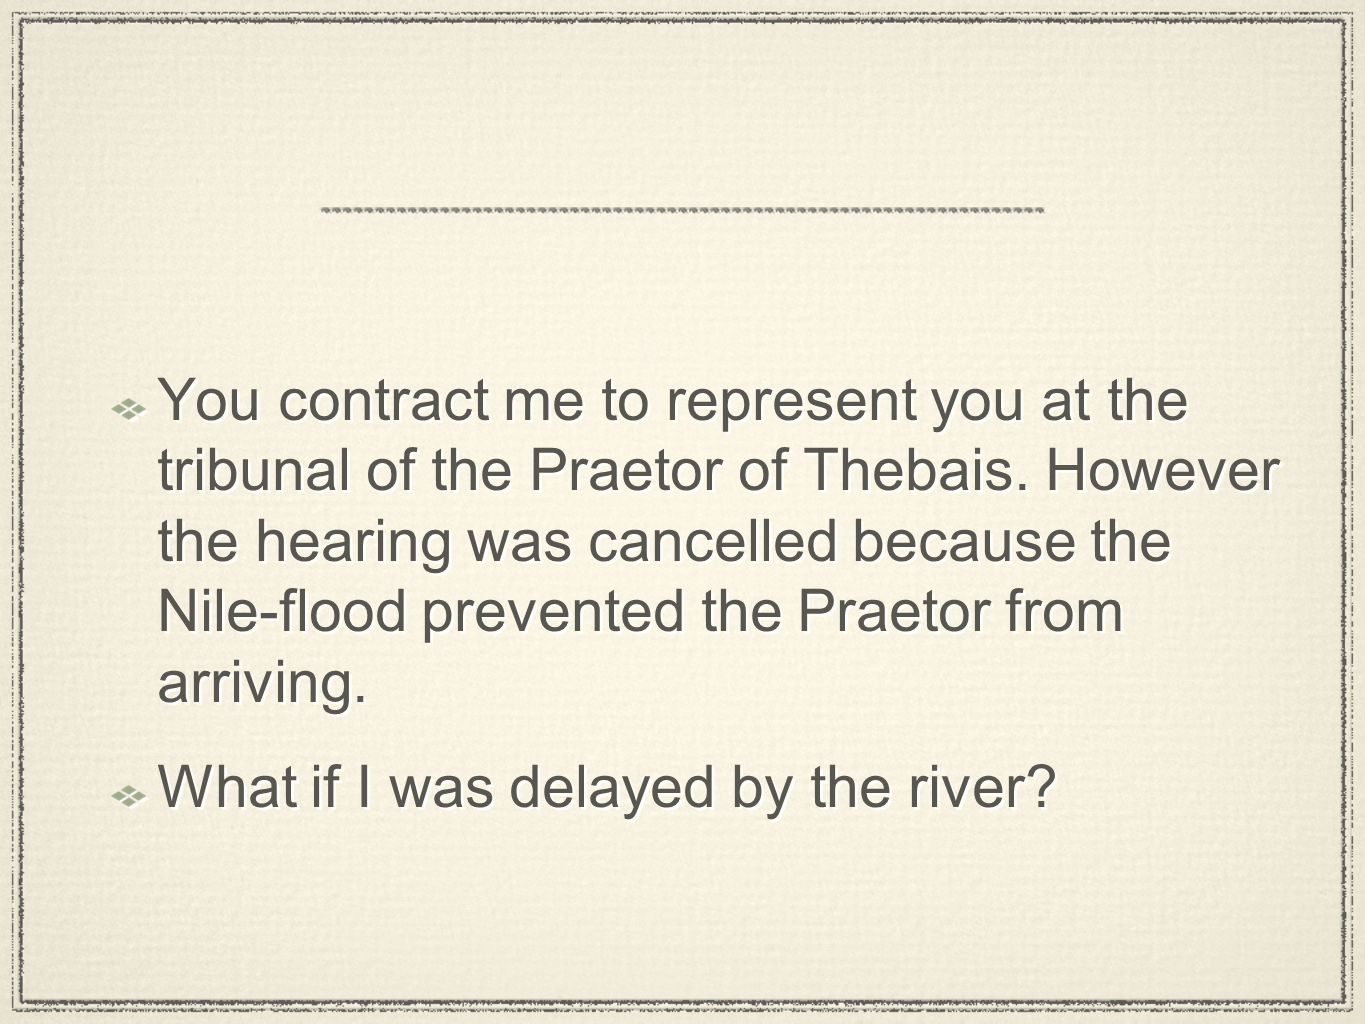 You contract me to represent you at the tribunal of the Praetor of Thebais. However the hearing was cancelled because the Nile-flood prevented the Pra